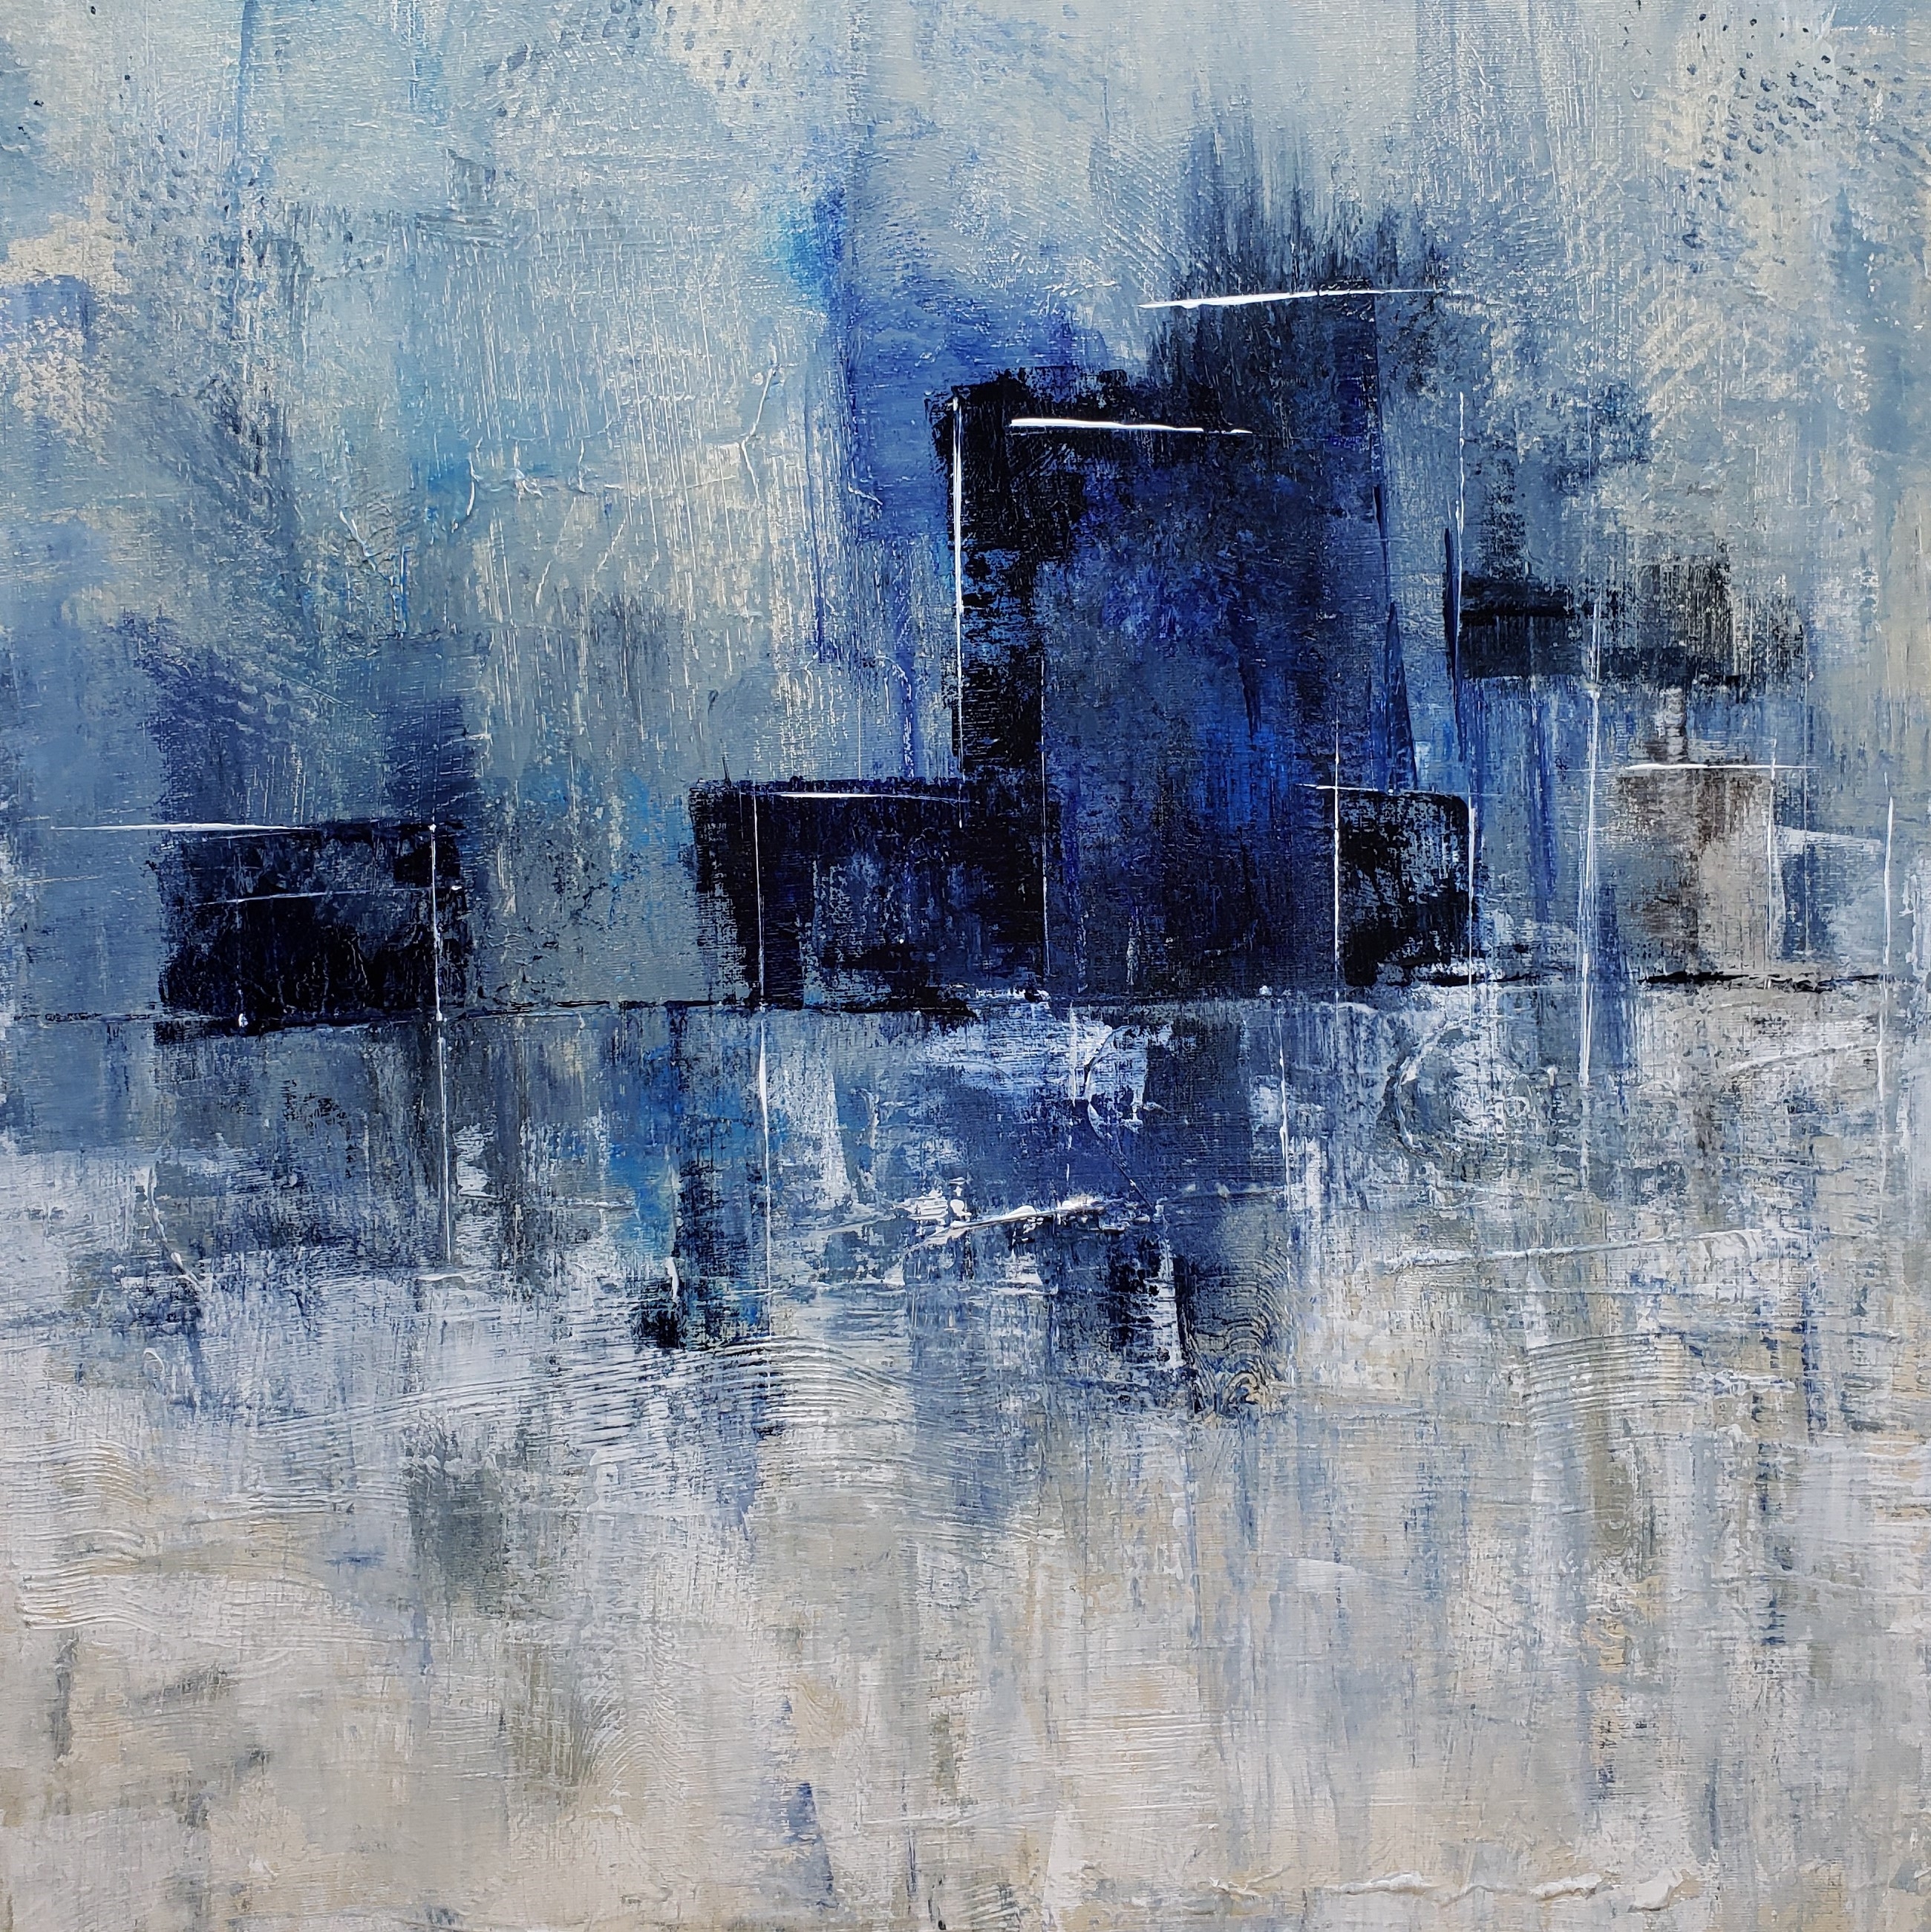 blue abstract city painting